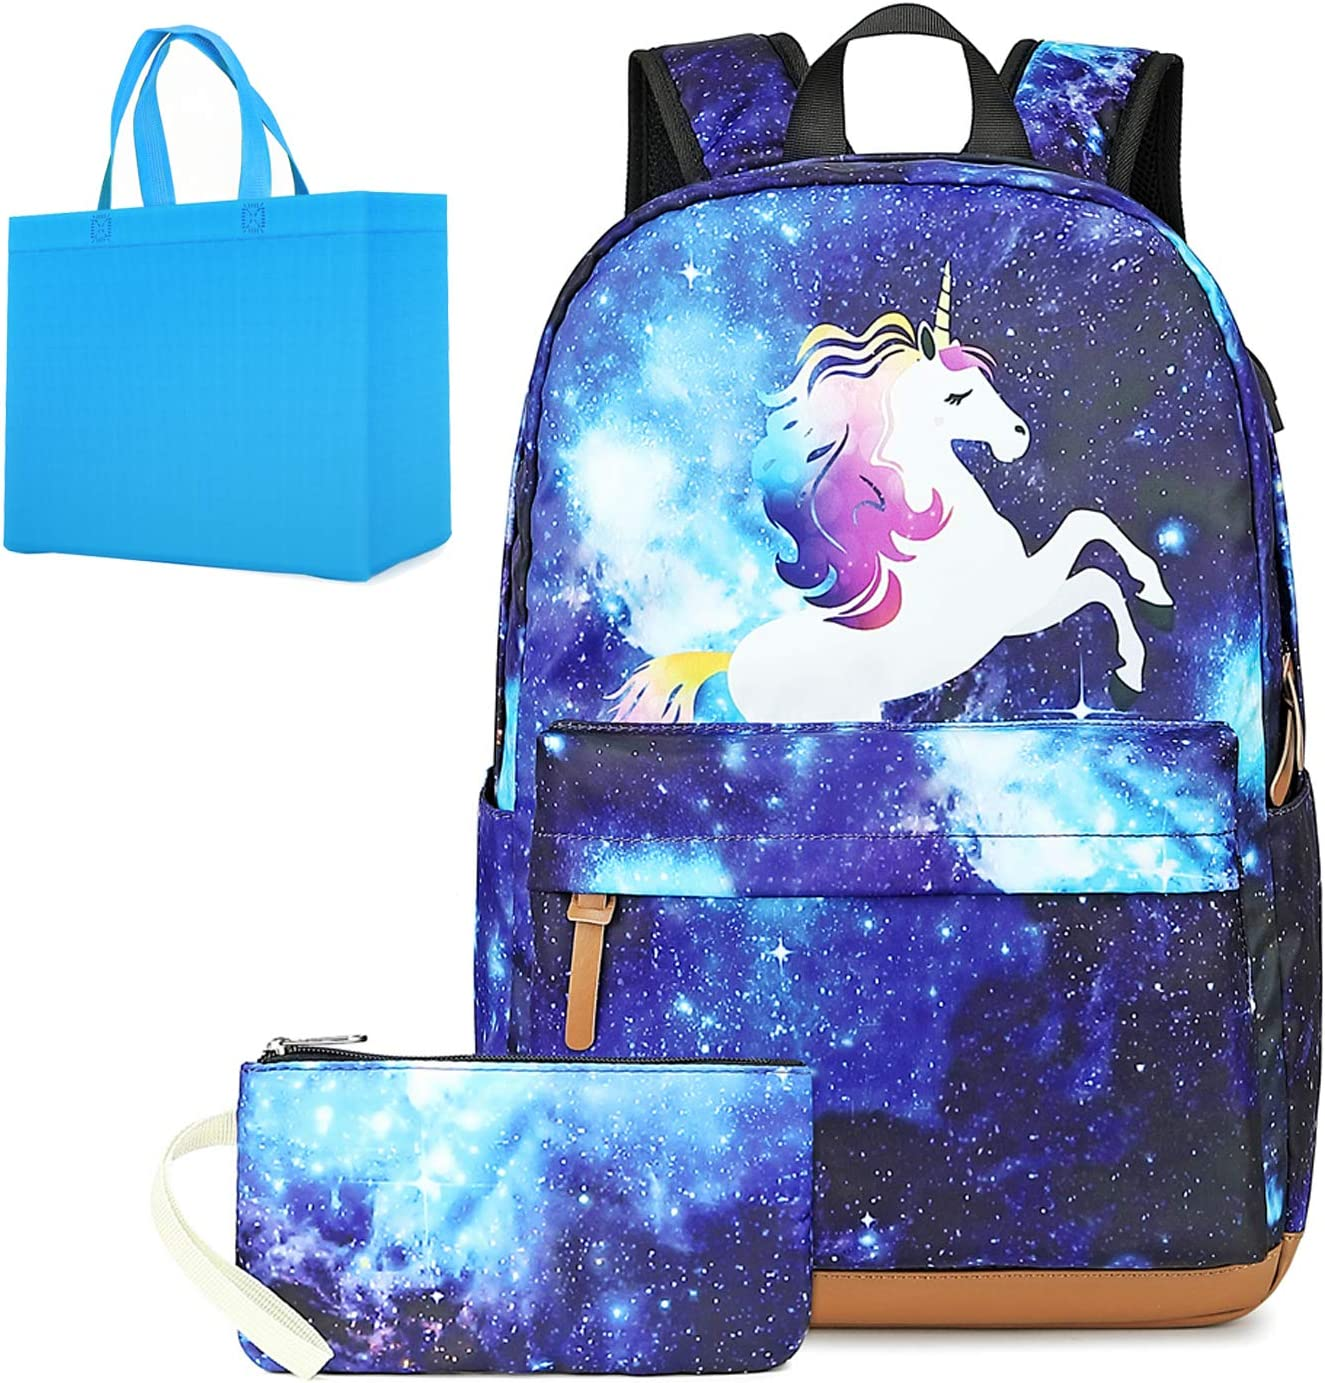 Unicorn Backpack for Girls Galaxy School Backpack with USB Charging Port Elementary School Bookbag with Pencil Bag 2 in 1 Schoolbag Sets for Girls